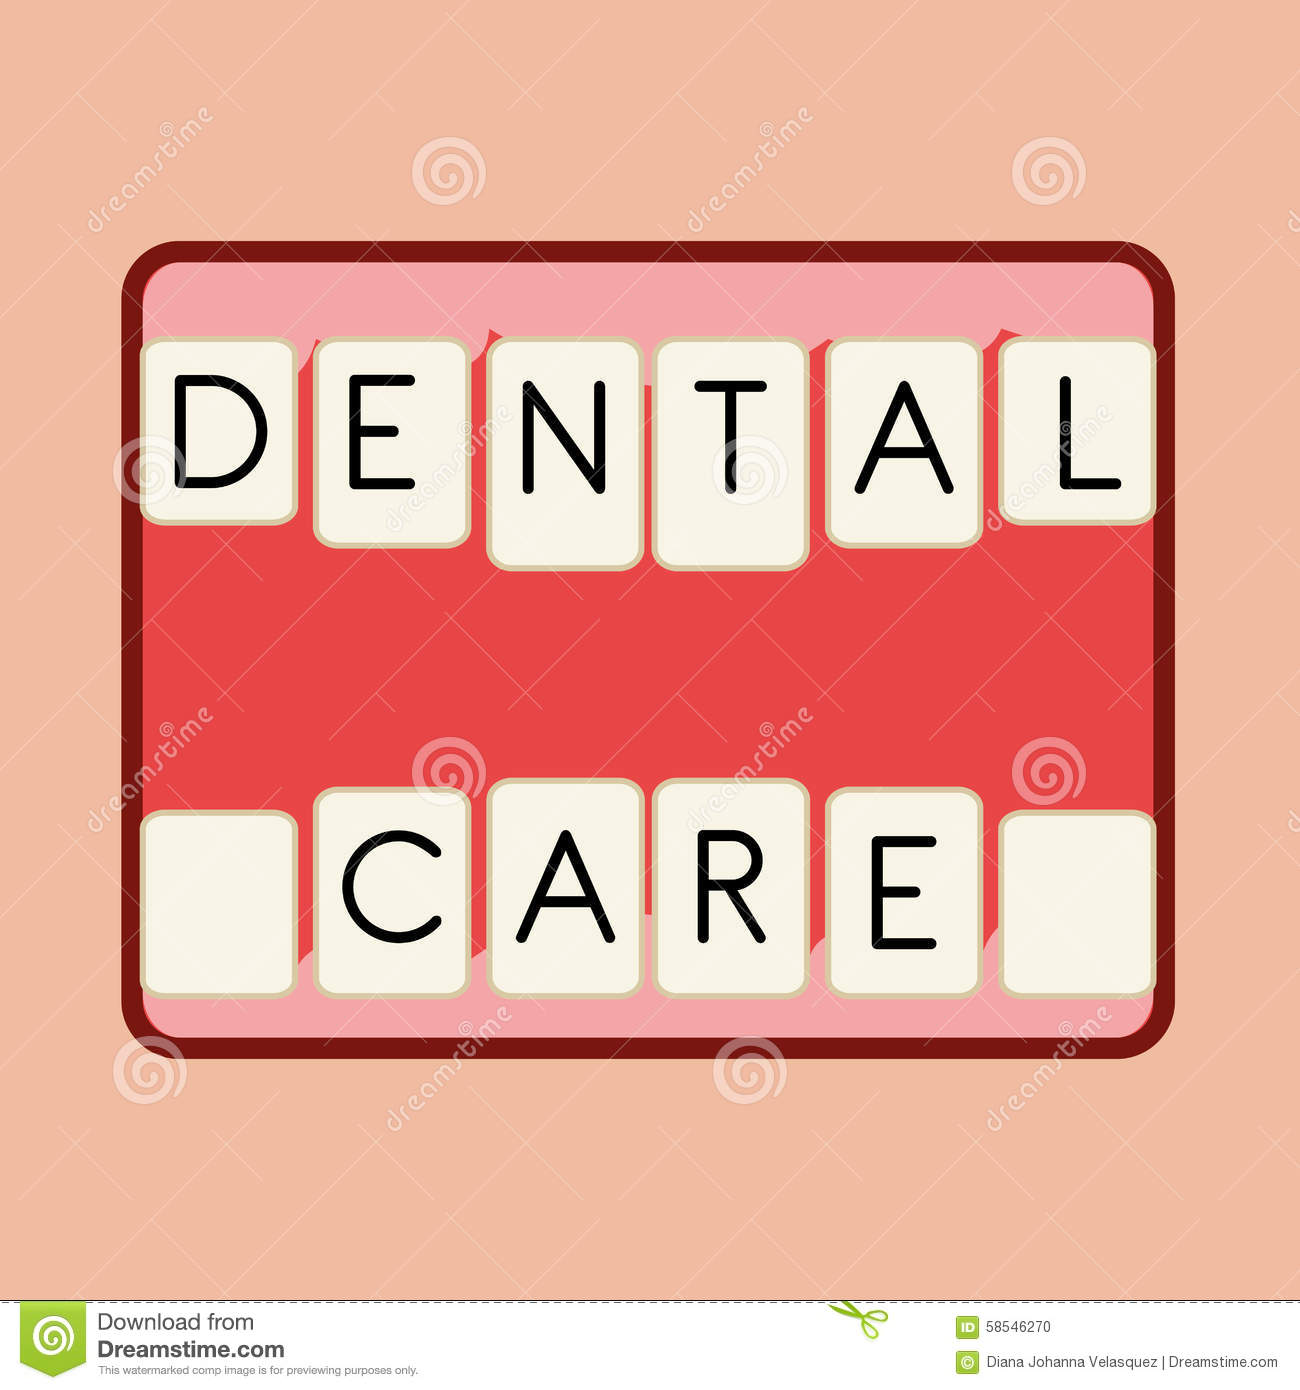 Dental Care Design Stock Vector Image 58546270